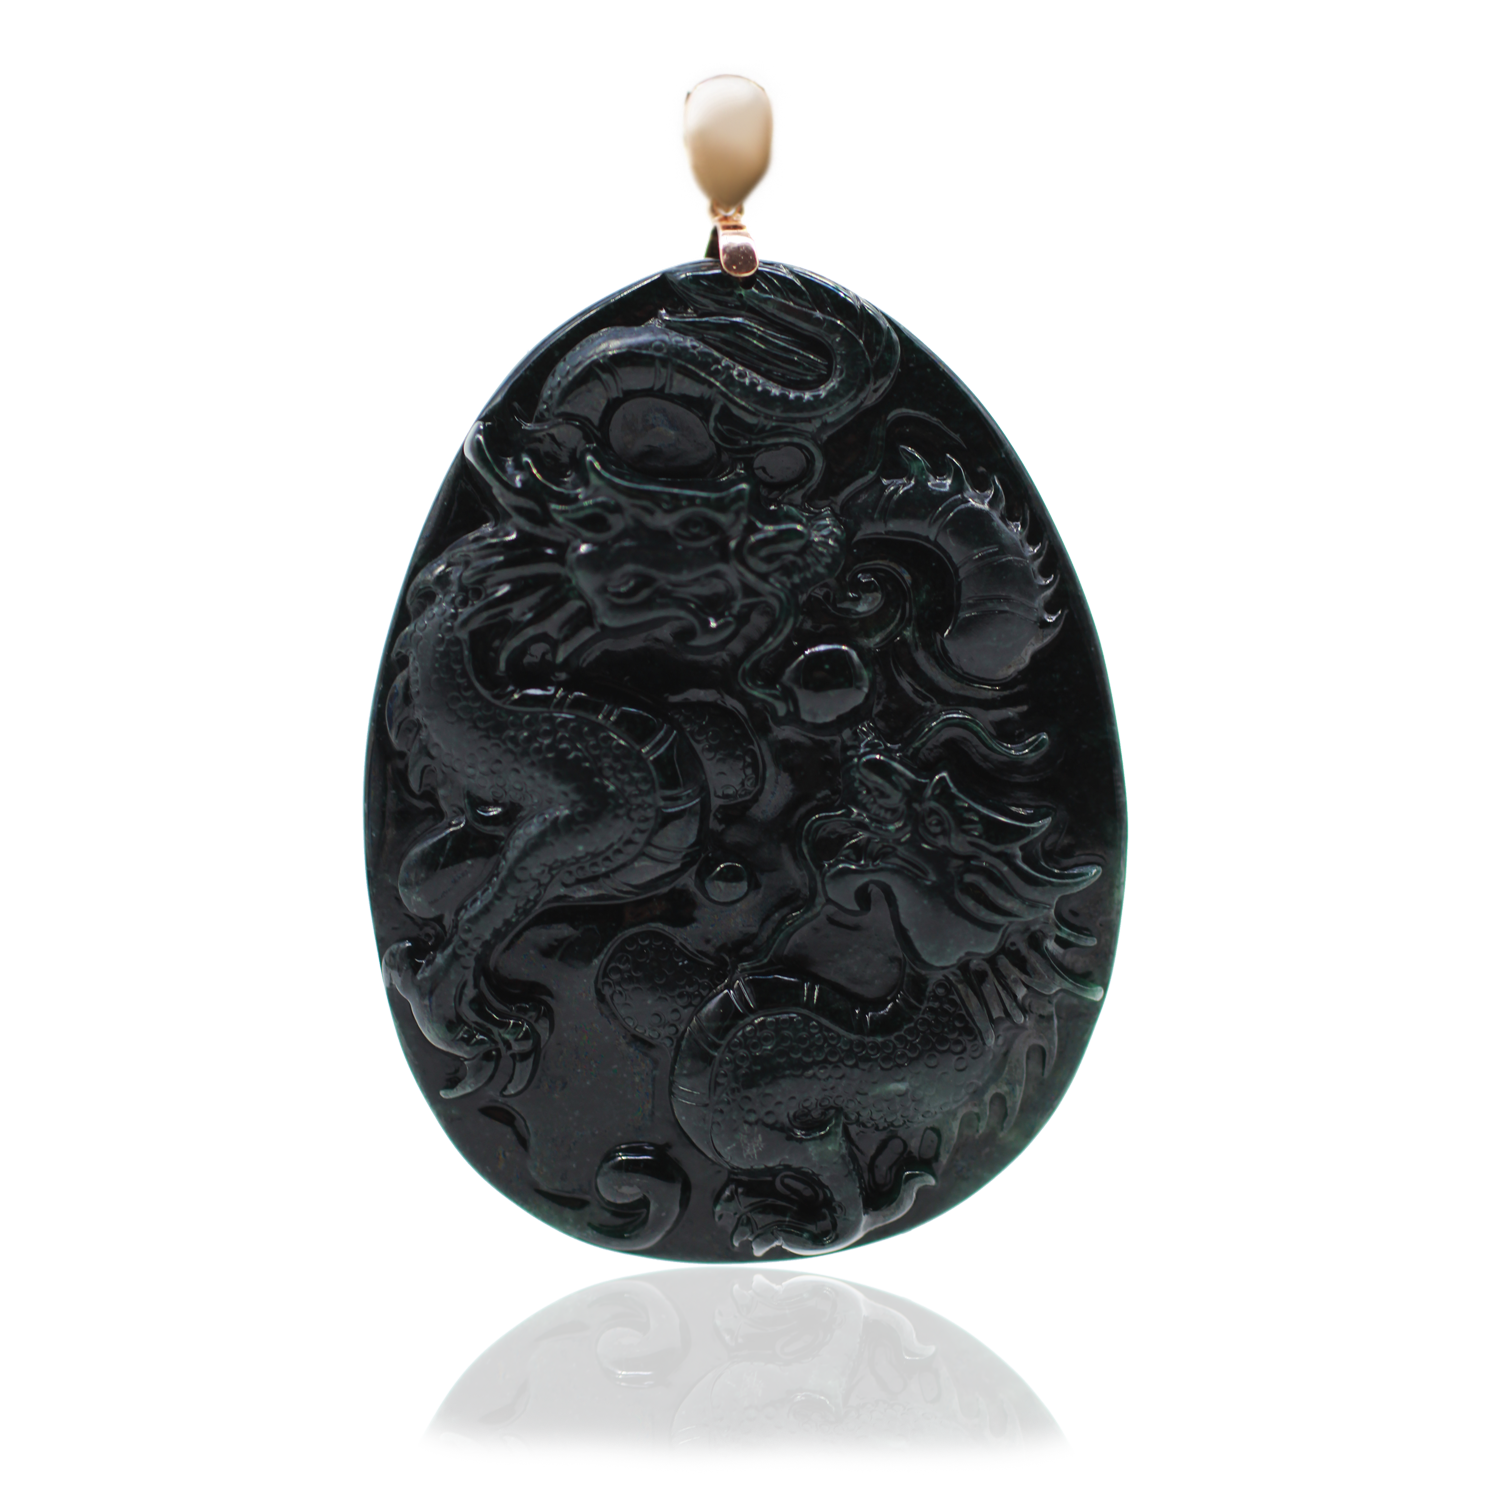 Imperial-Dragon-Black-w-Reflection-SQ